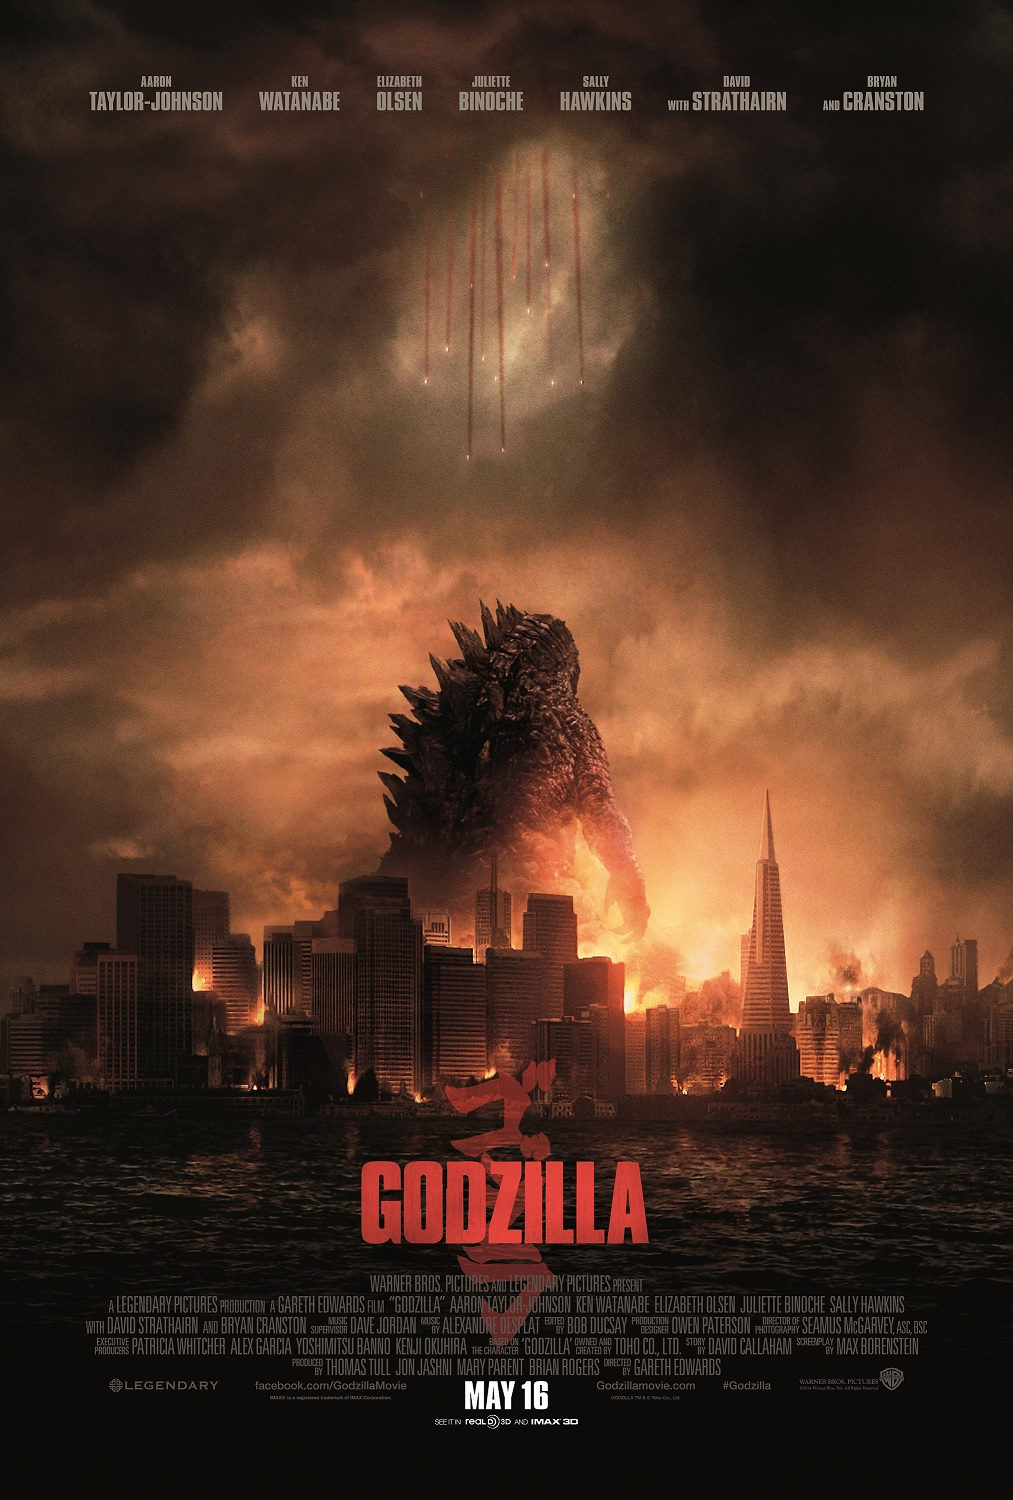 godzilla new poster New Trailer for Godzilla Unleashes the Beast